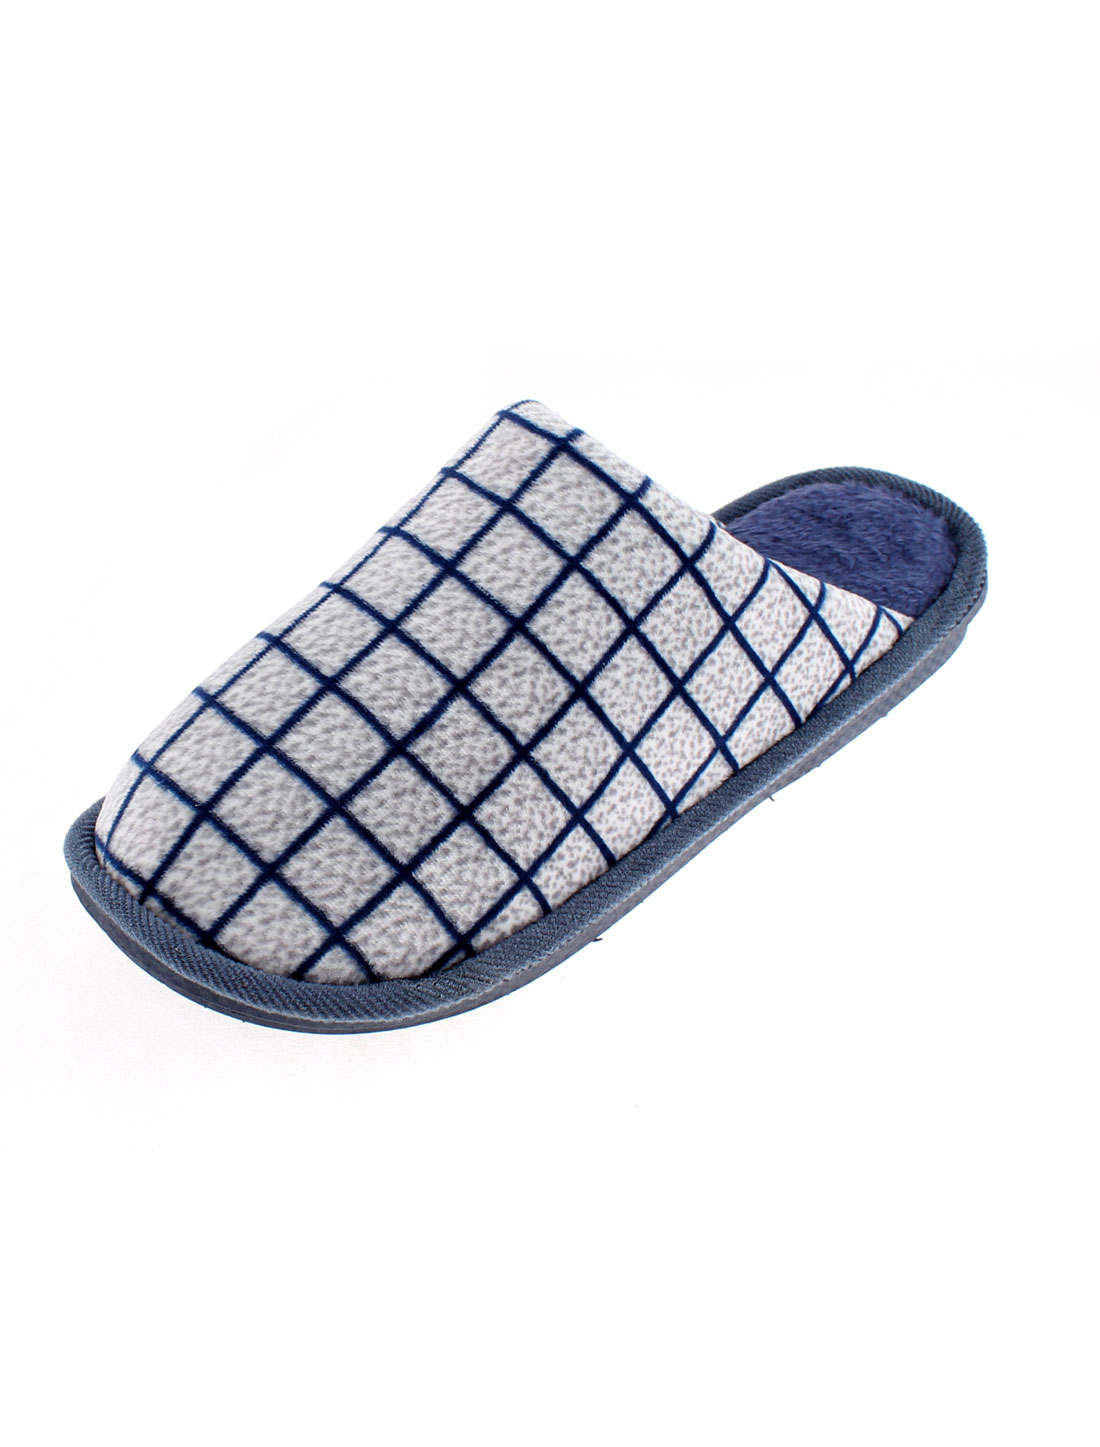 Women Grid Pattern Non-skid Casual Warmer Cotton Slippers Blue US 10.5